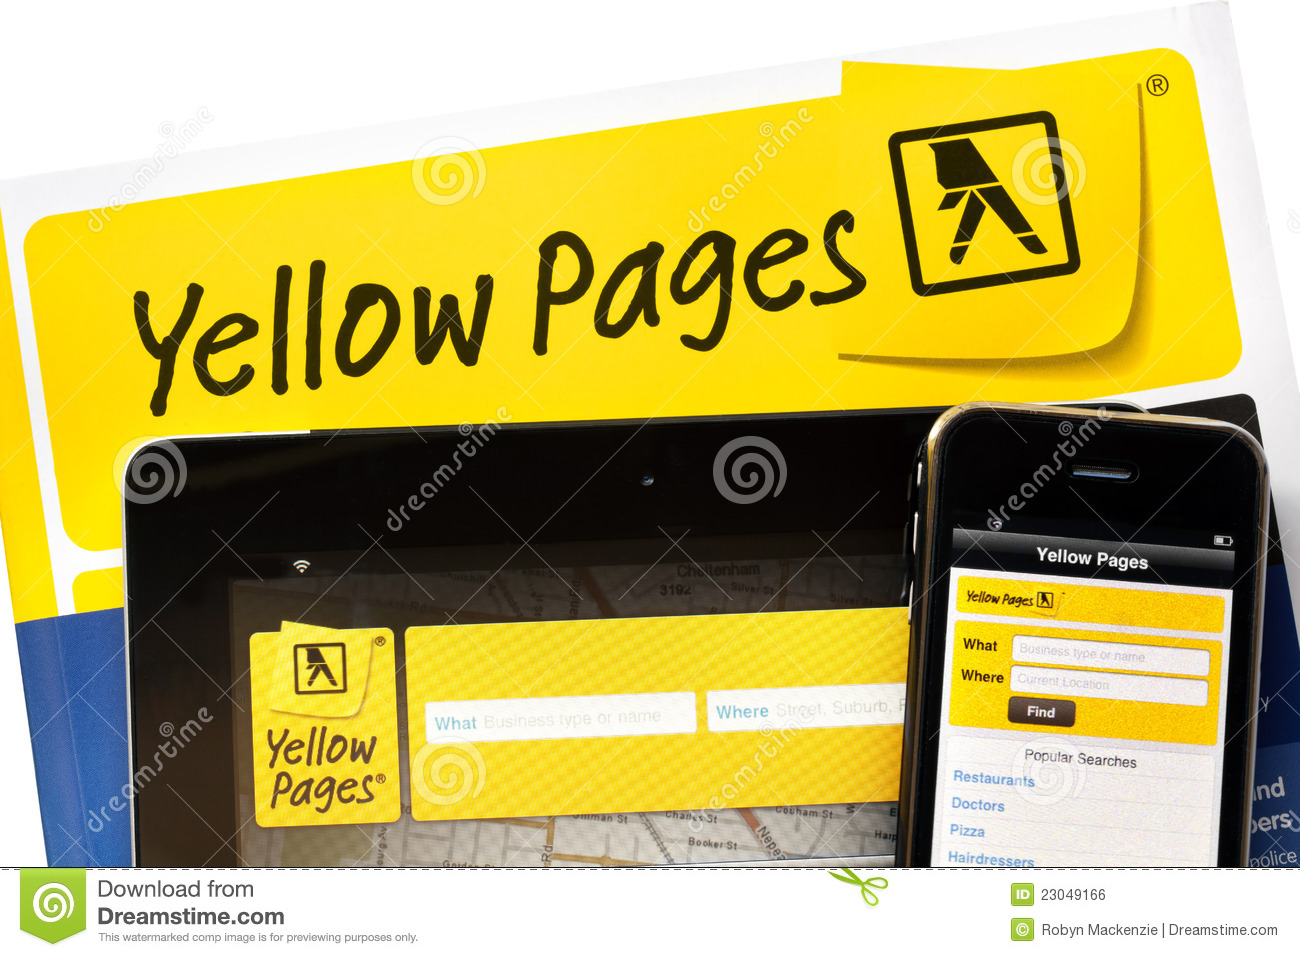 Yellow pages melbourne address